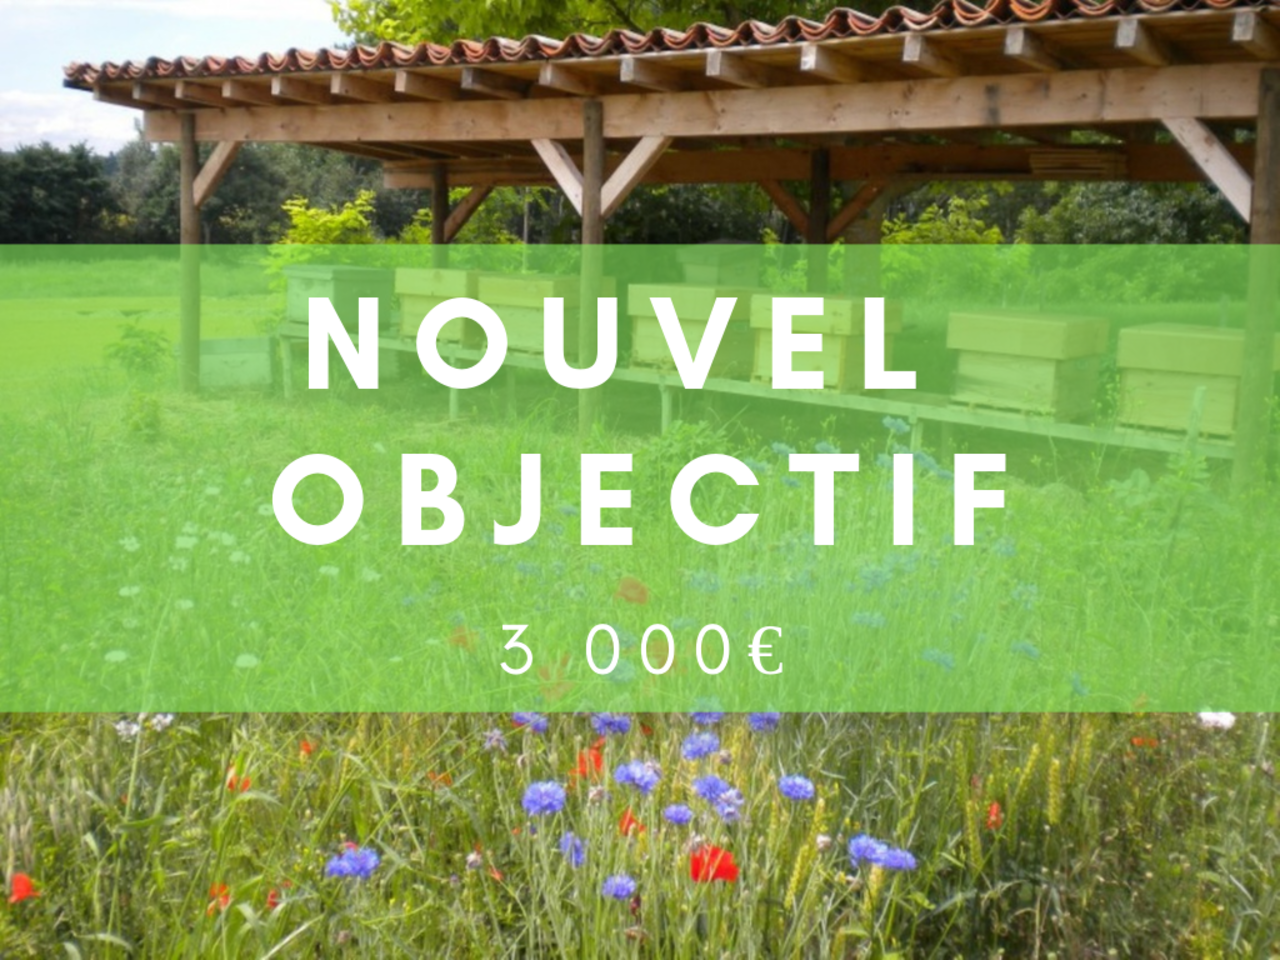 Nouvel objectif frederic